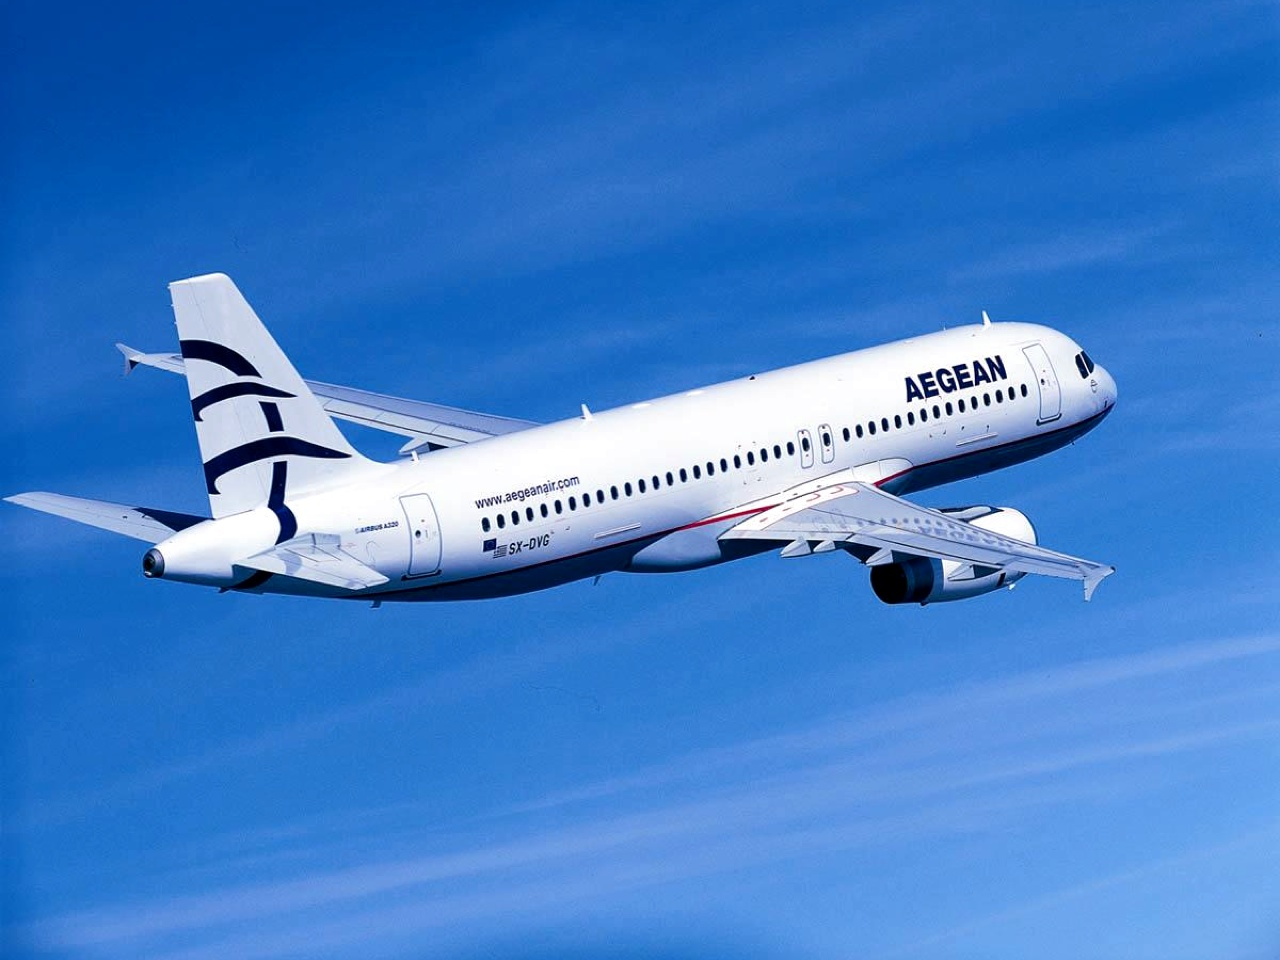 Aegean Airlines Among 2015's Fastest Growing Airlines